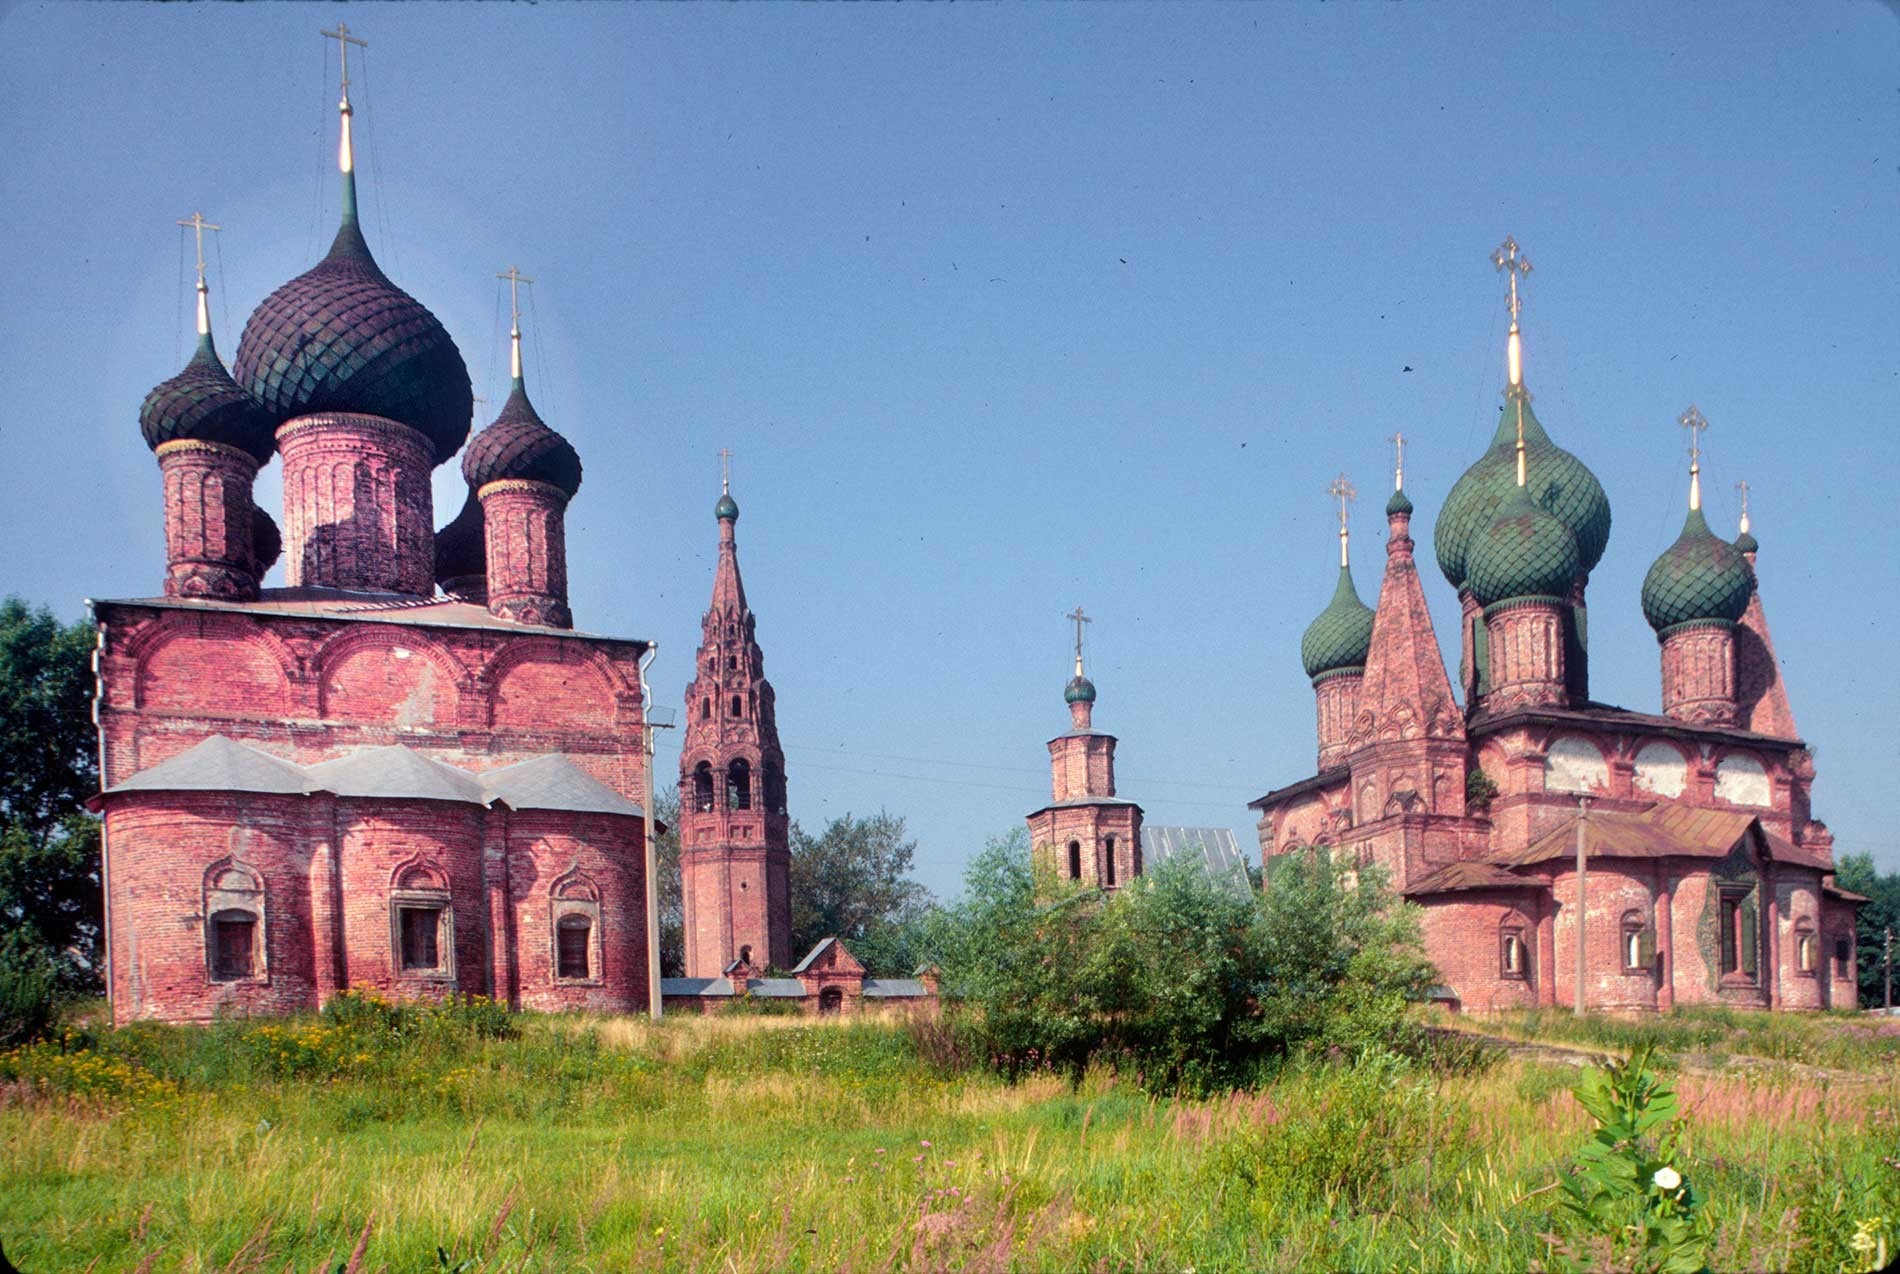 Korovniki ensemble: Church of the Vladimir Icon (left), bell tower, Holy Gate,   Church of St. John Chrysostome. East view from Volga embankment. July 27, 1997.